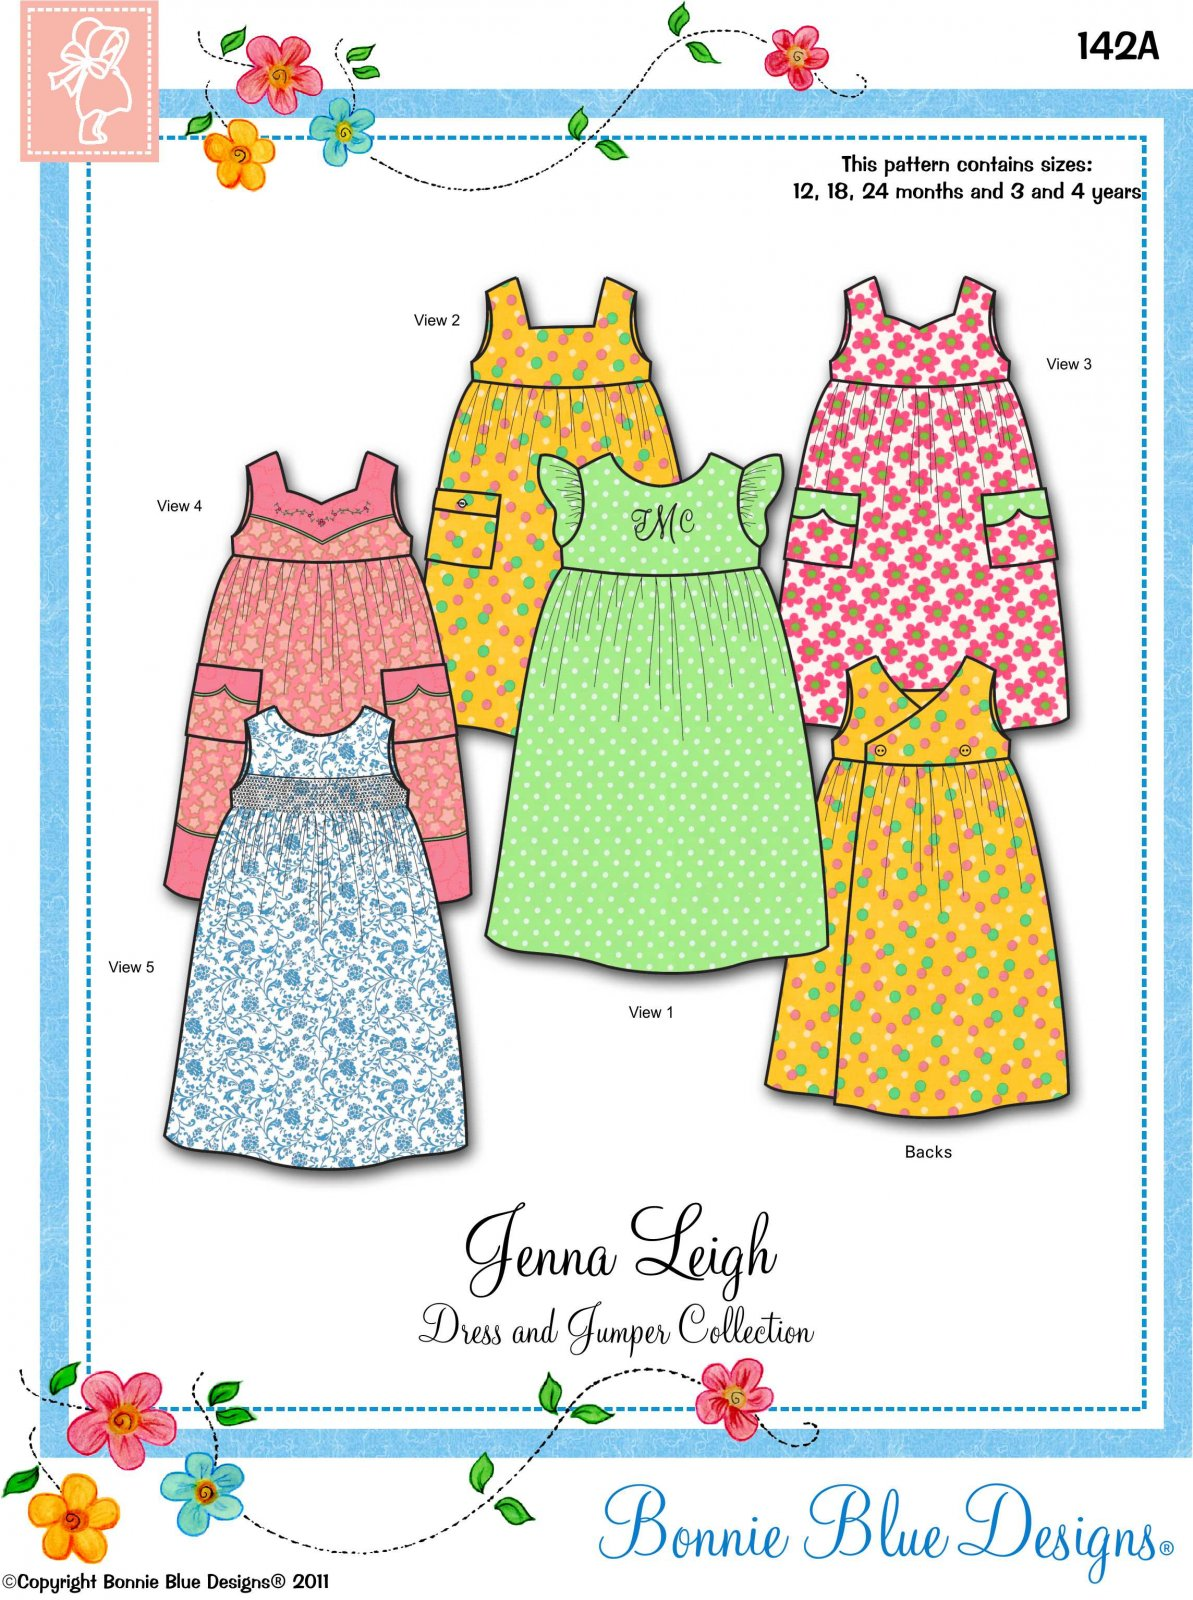 Bonnie Blue Designs Jenna Leigh 142A